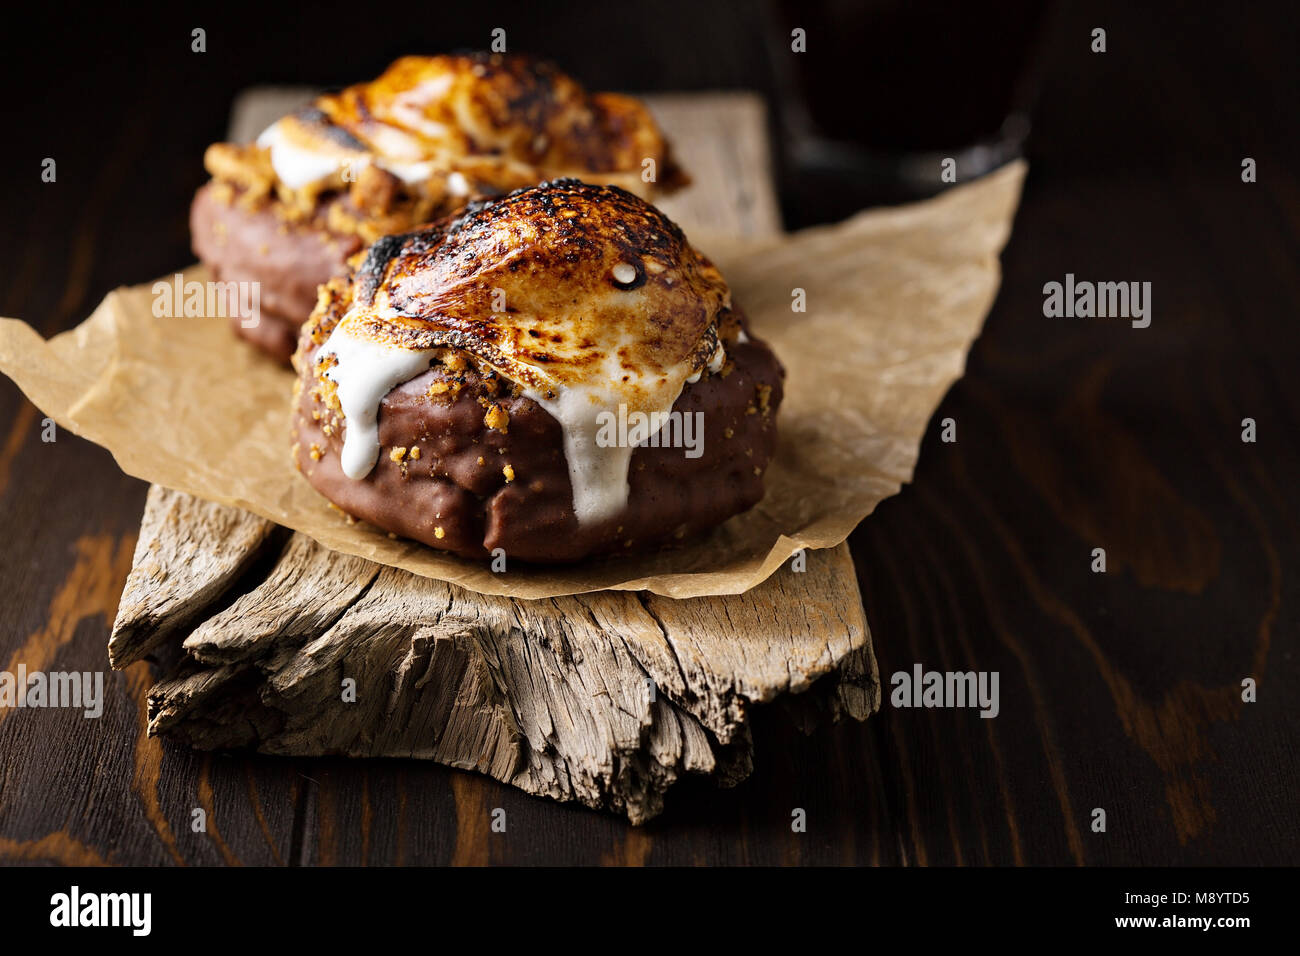 Smores donuts sur fond sombre Photo Stock